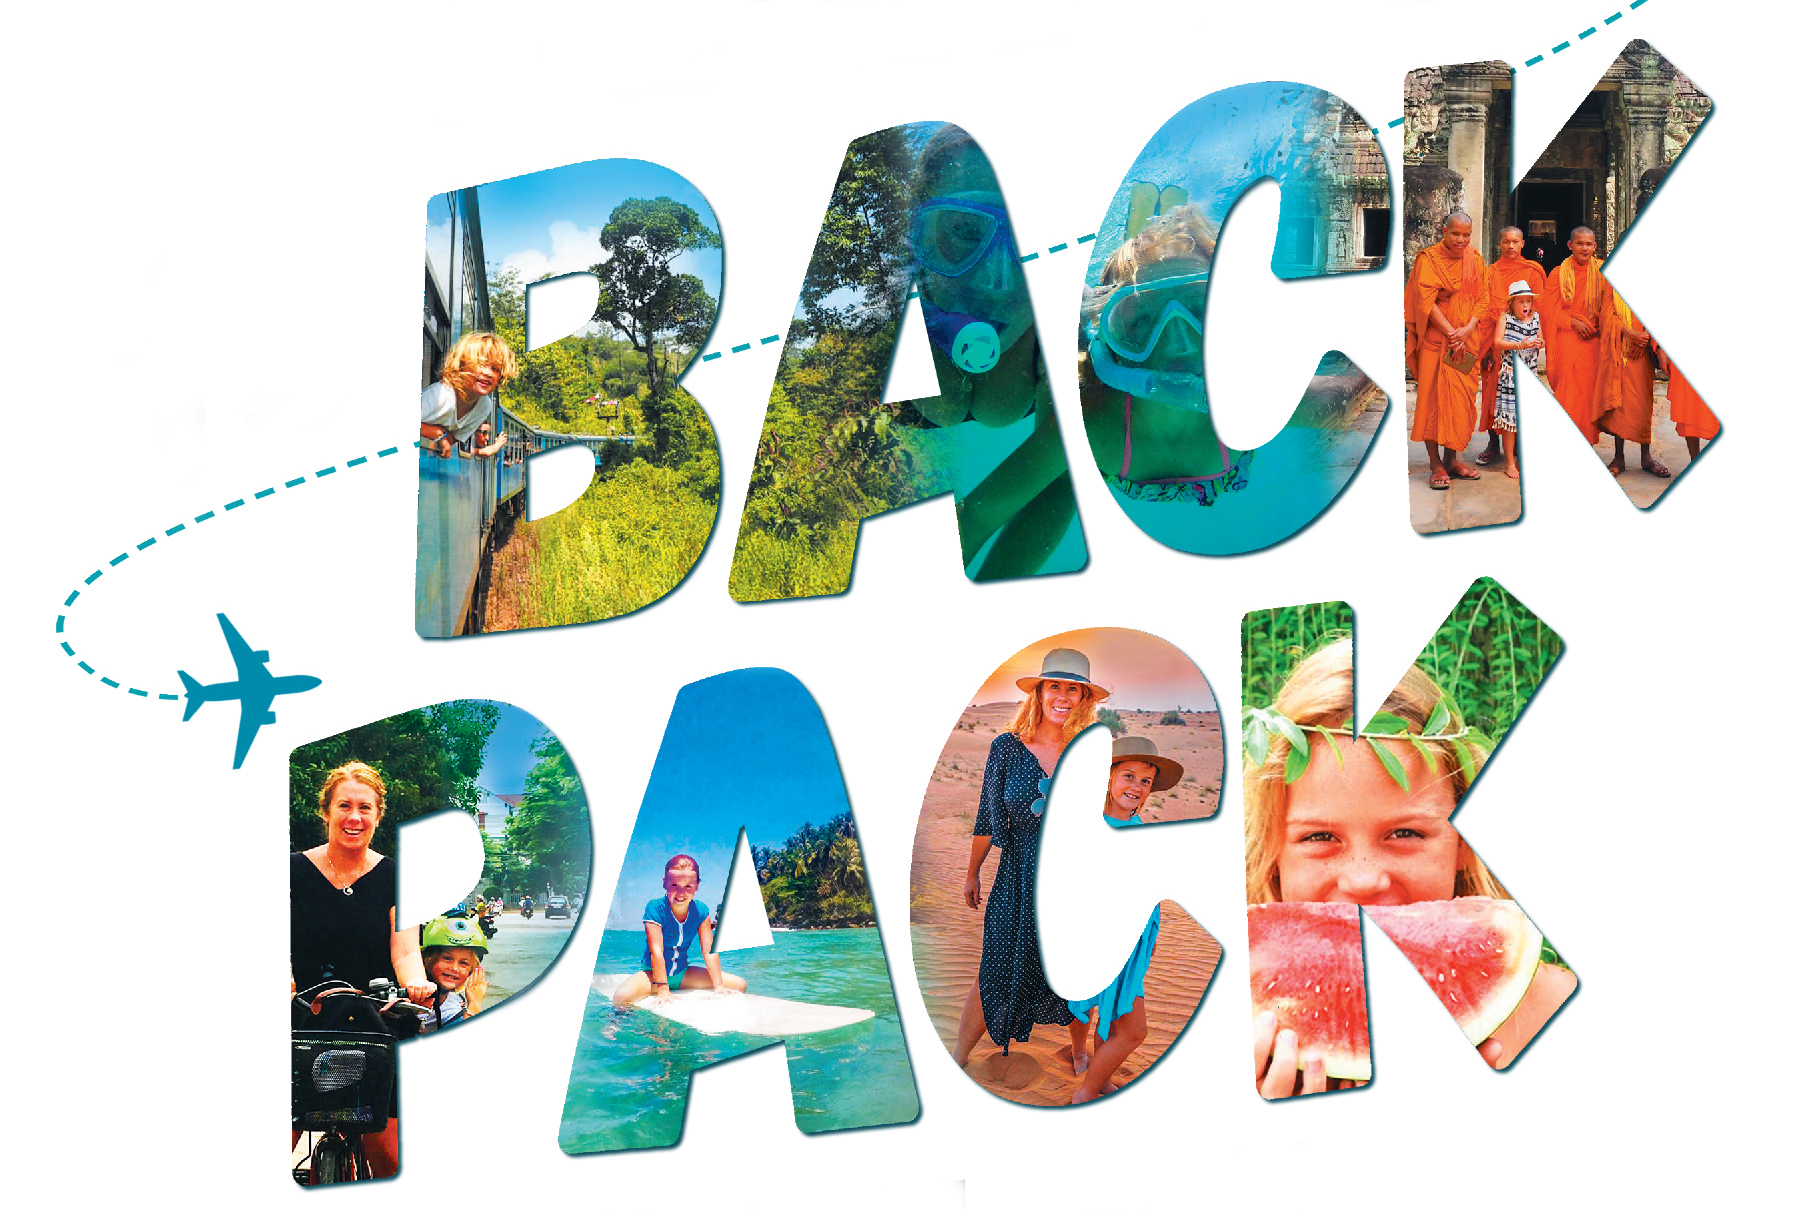 The word backpack with many images of travel detinations imposed on the lettering